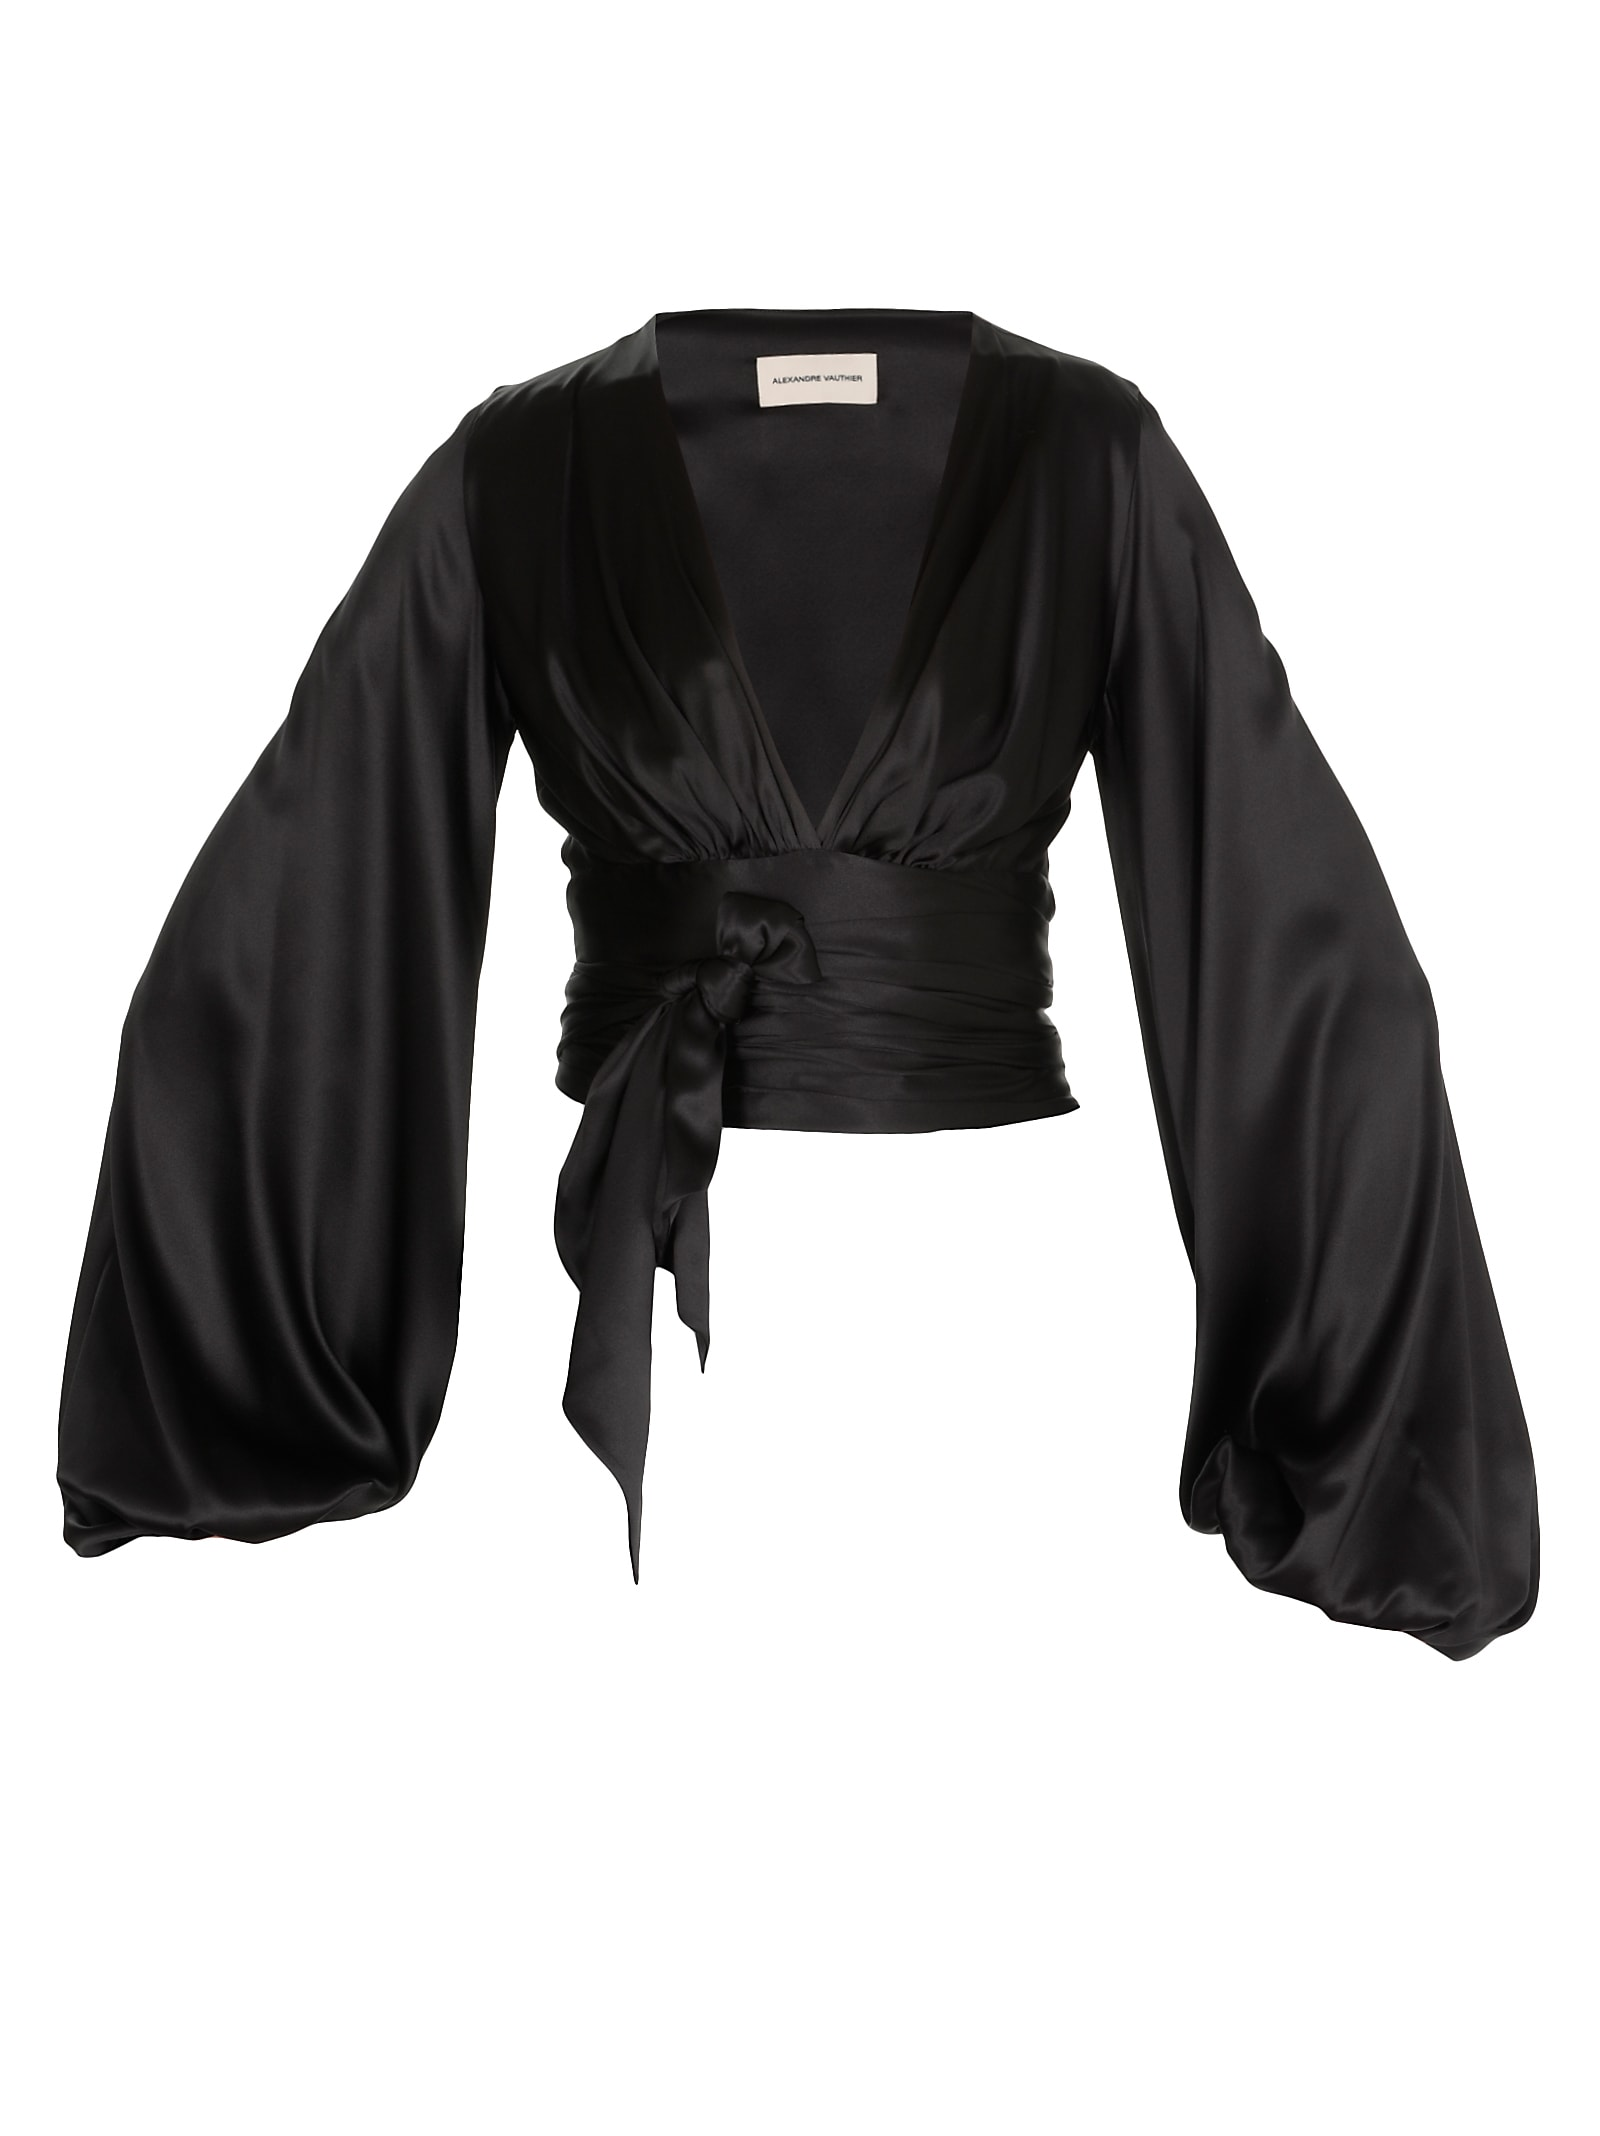 Alexandre Vauthier Wrap Around Top